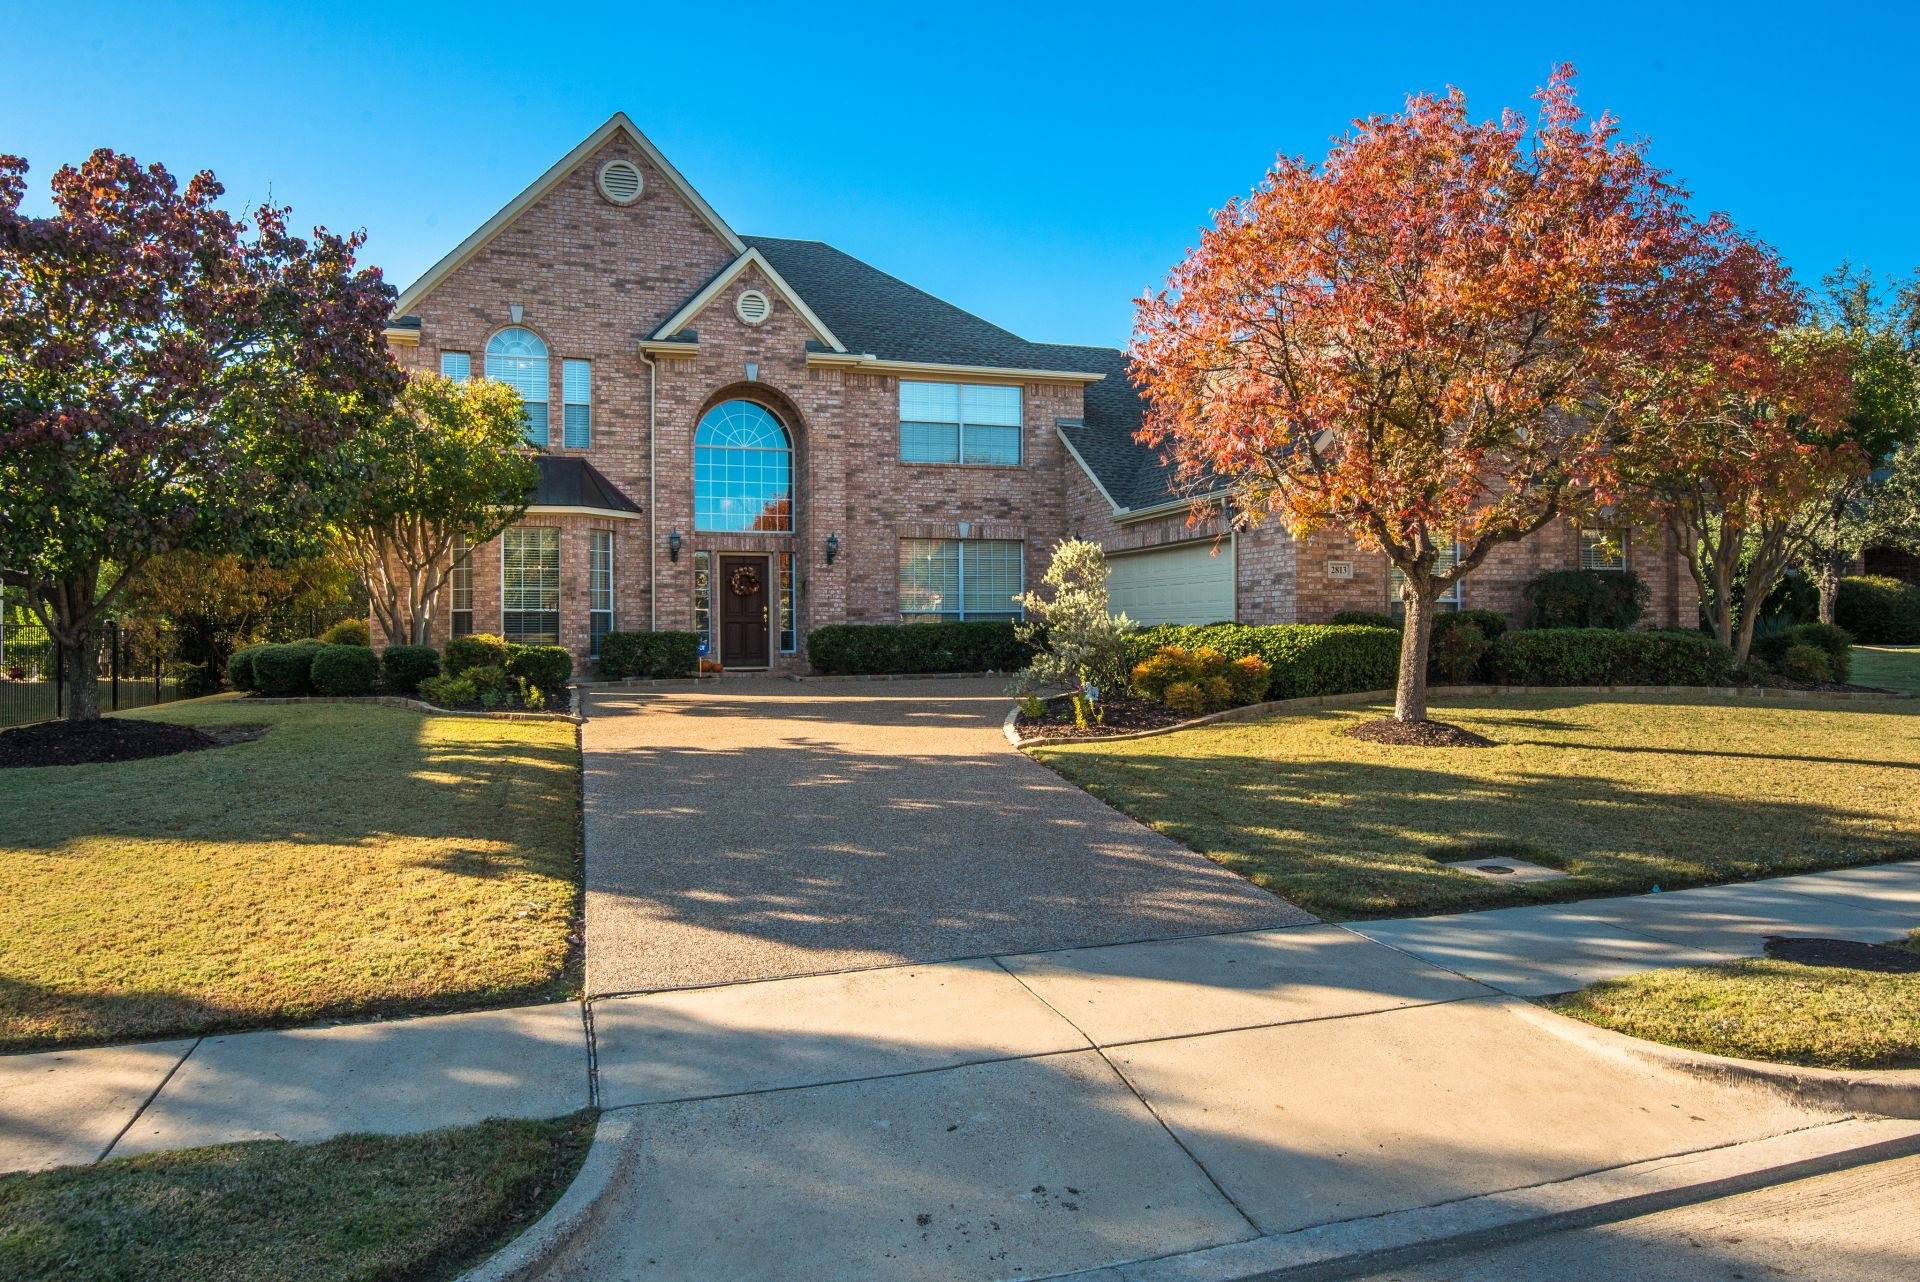 JUST LISTED IN FLOWER MOUND!